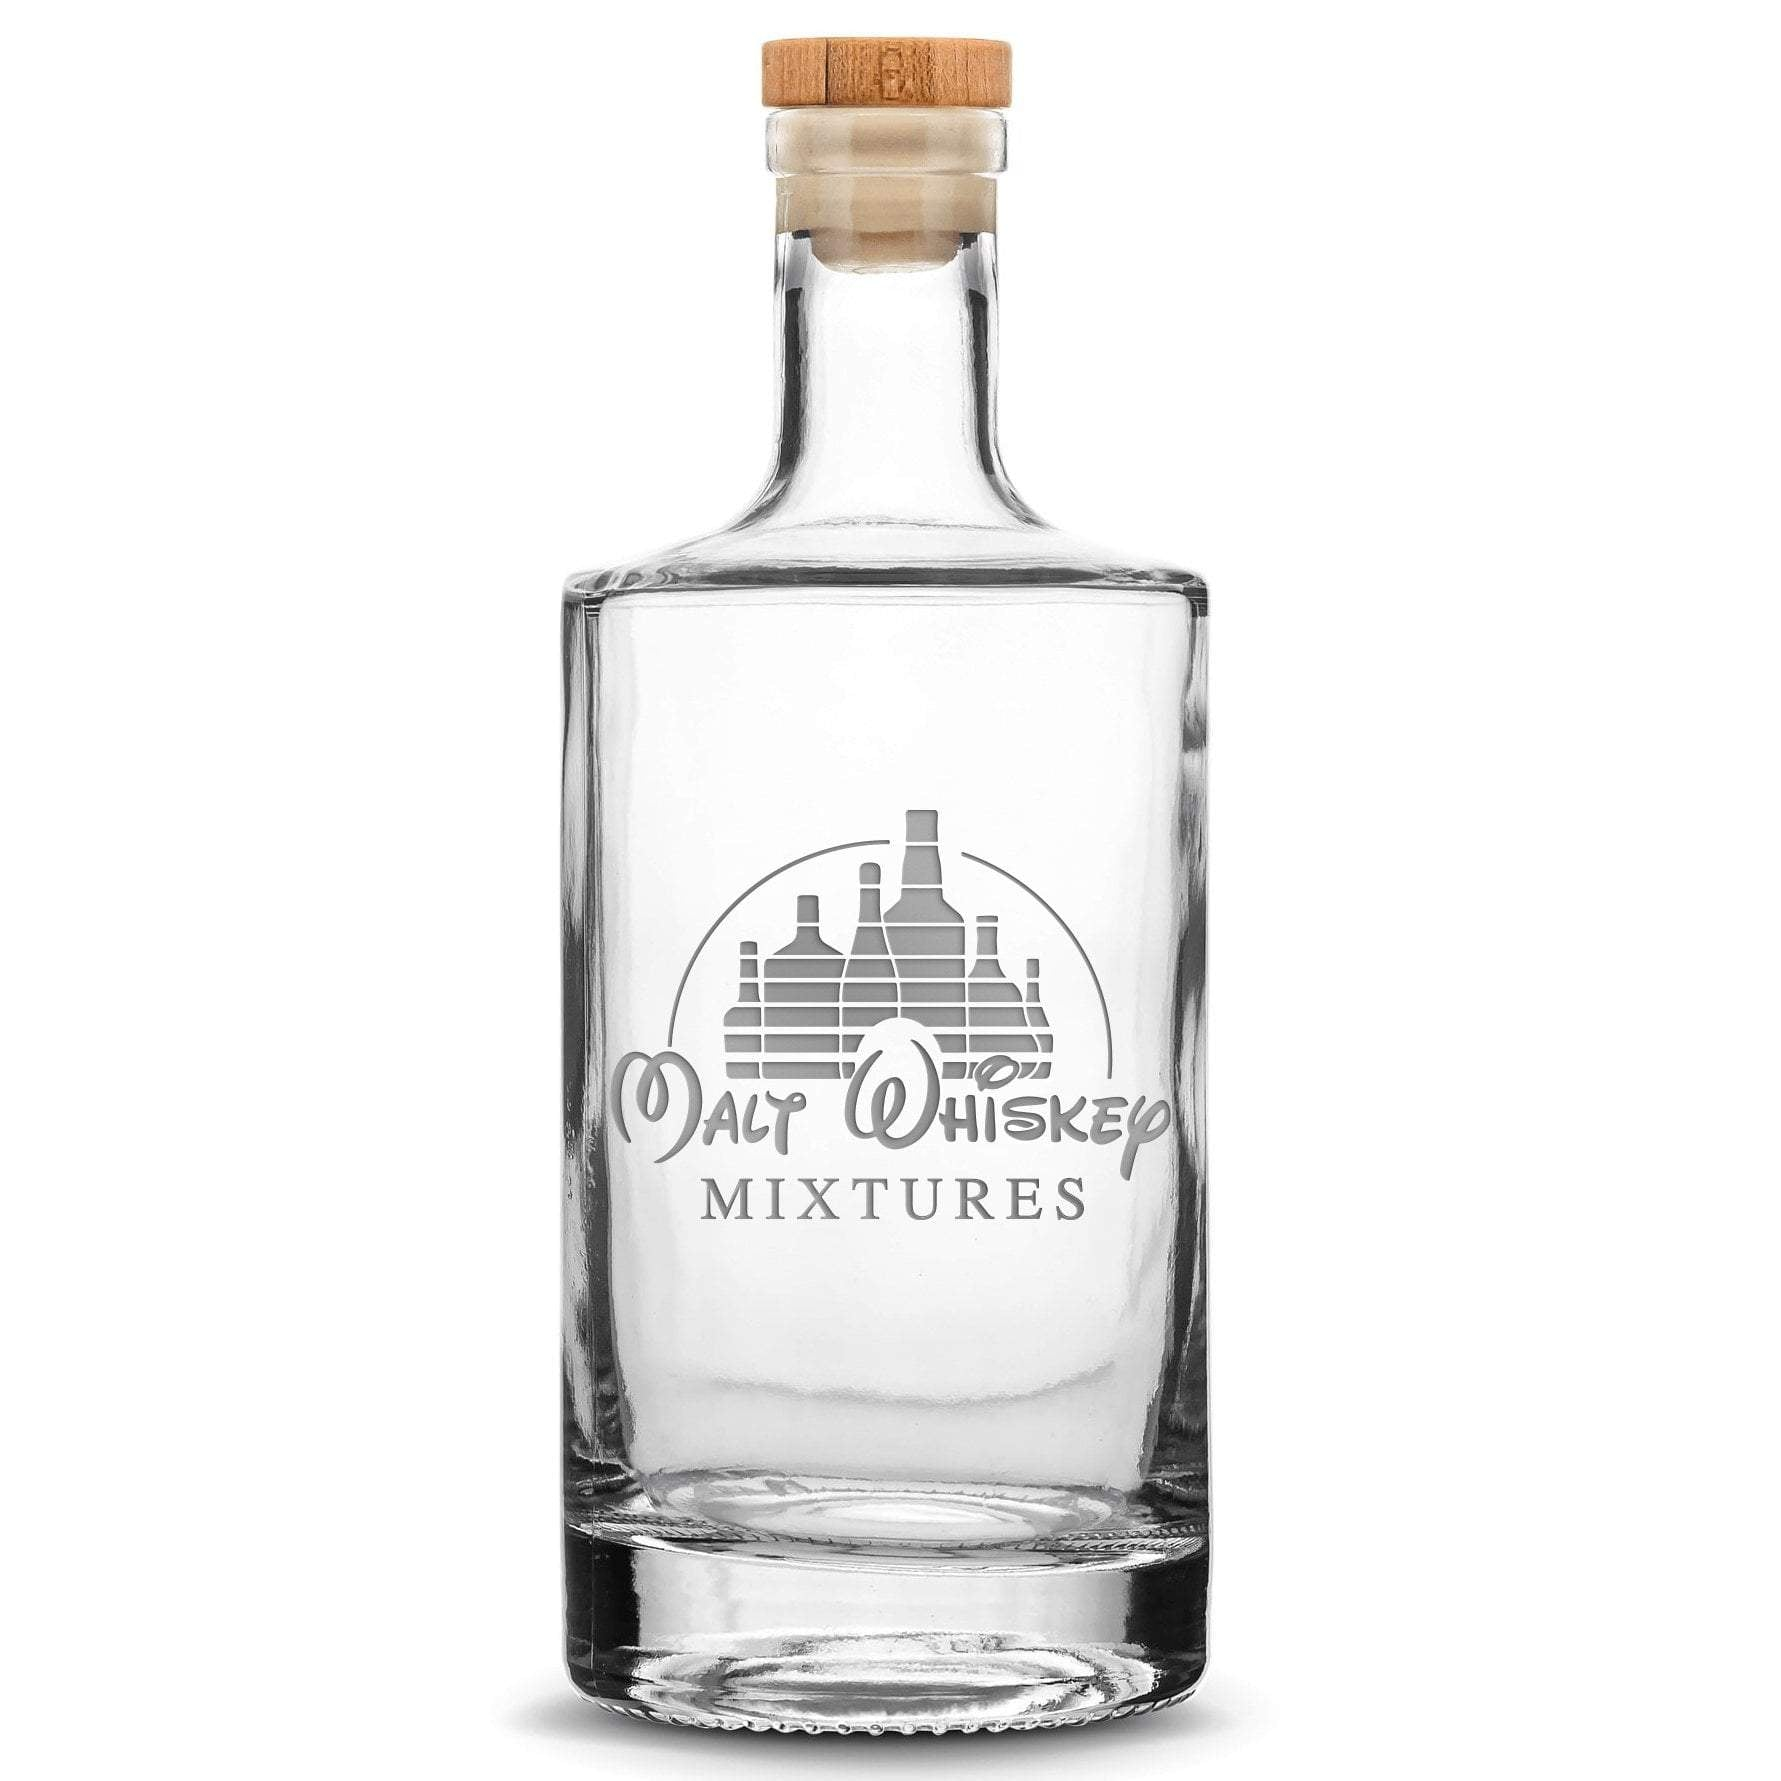 Deep Etch (no color) Premium Refillable Jersey Bottle, Malt Whiskey Mixtures, 750mL by Integrity Bottles